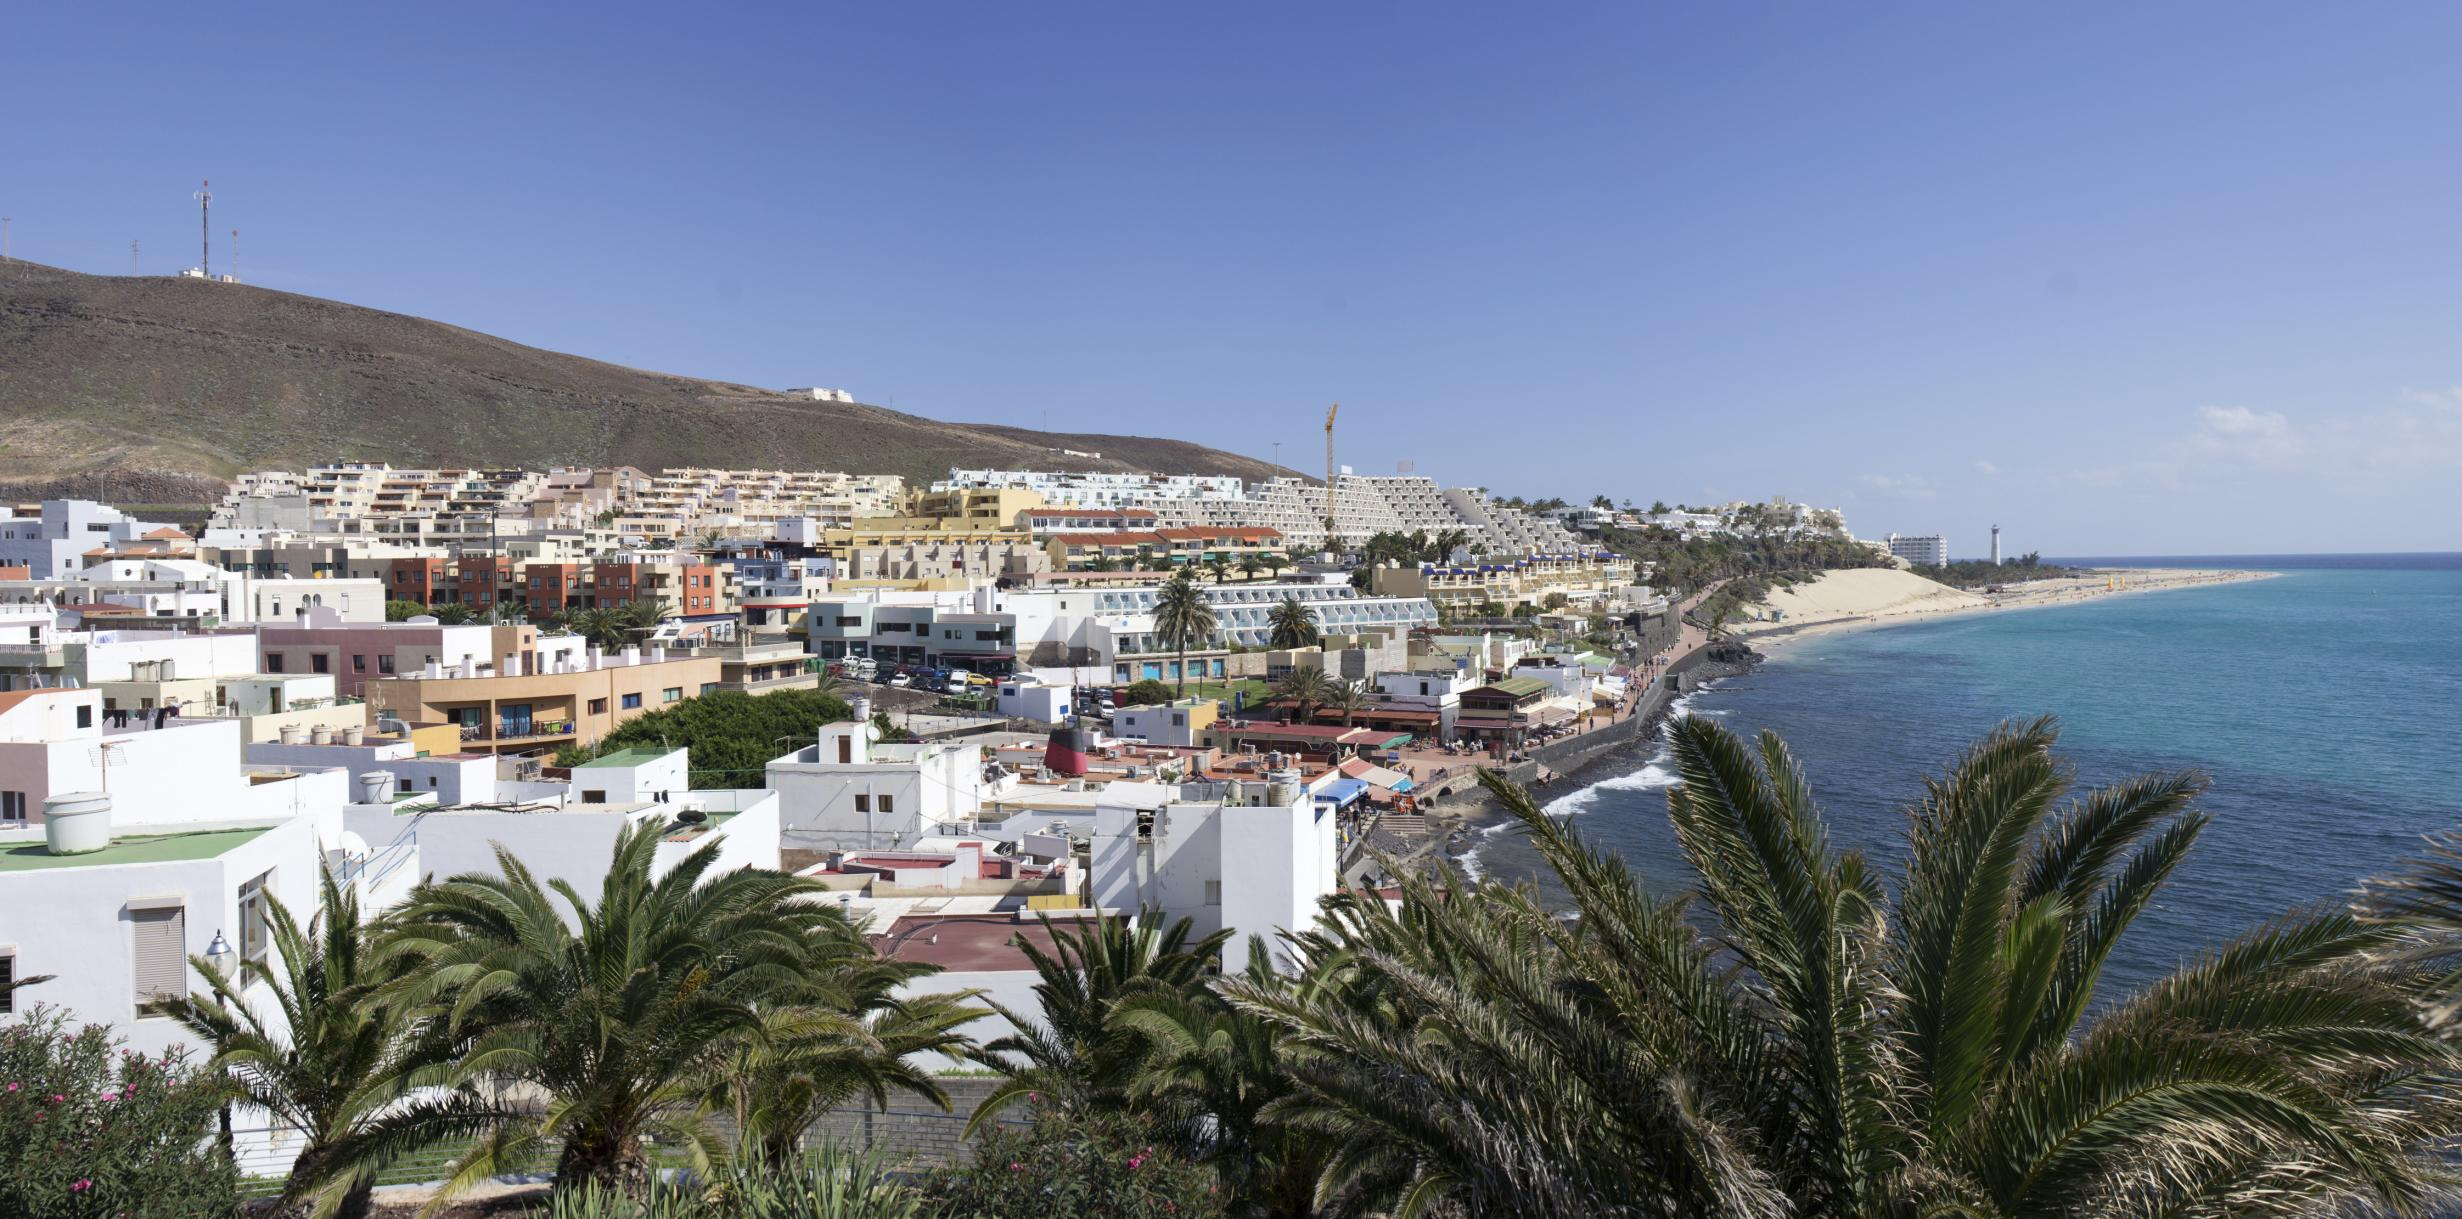 <p>This Canary Island may offer year-round sun, but in the last 12 months, the average price of a flight there has fallen 17%.</p>  <p>June offers the best deals this summer, with an average cost of £143 per person. Unsurprisingly for such a family-friendly destination, the price rises steeply in July to an average of £247, and then again in August to £270.</p>  <p>The island also tends to have some very competitive all-inclusive deals, so it's worth checking what's on offer before committing to a flight and separate hotel.</p>  <p></p>